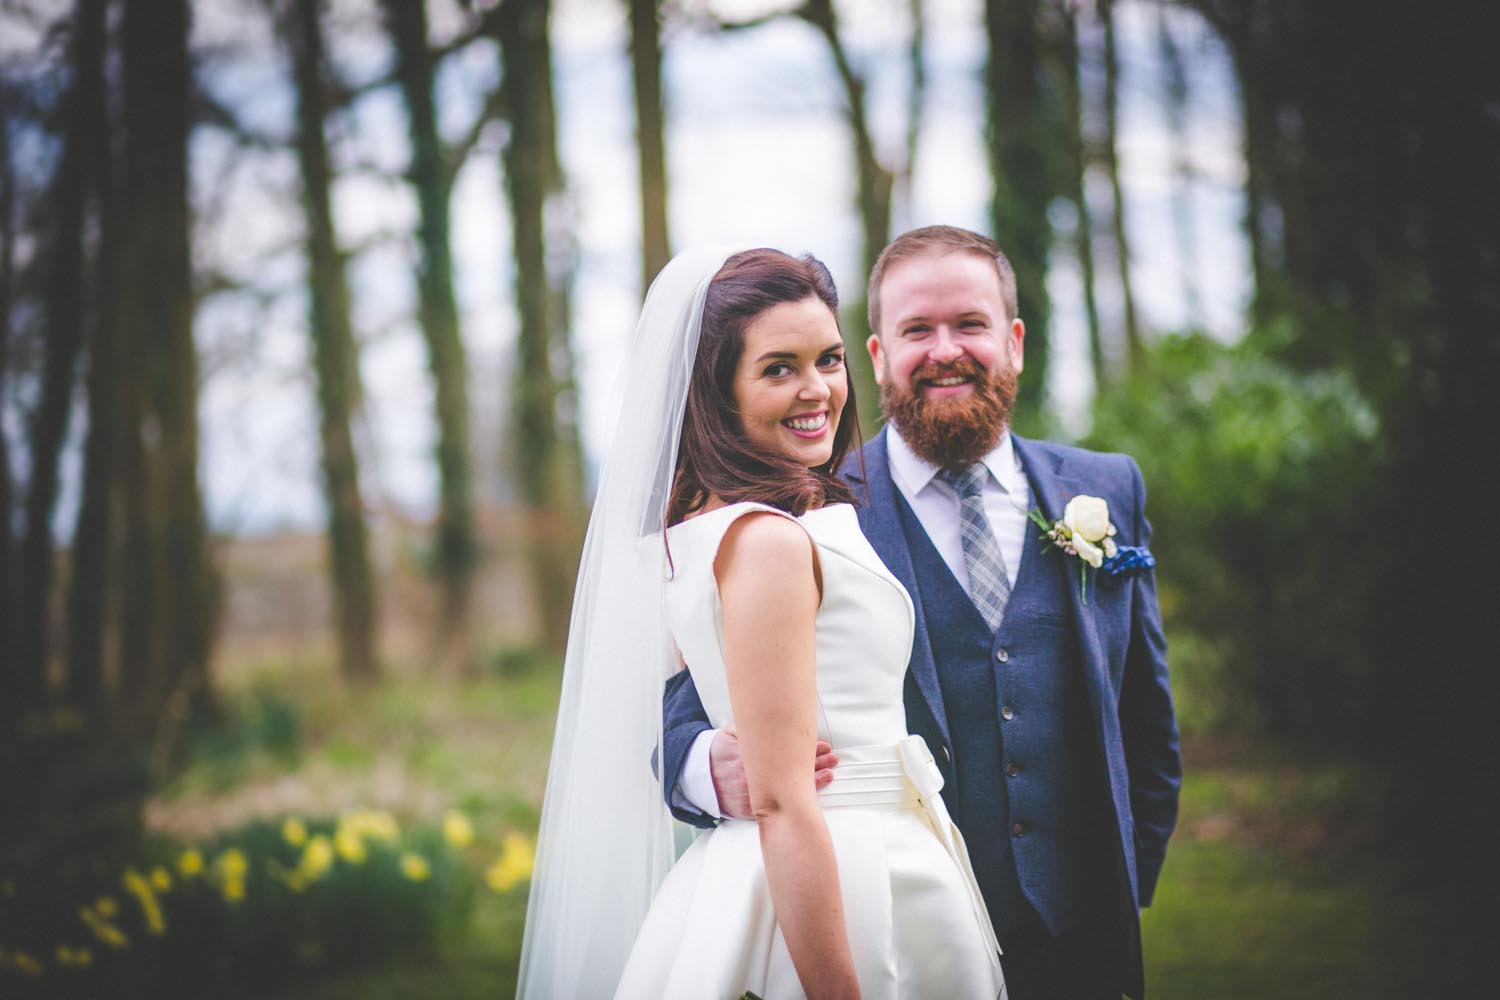 Step House wedding photographer Carlow Borris093.jpg